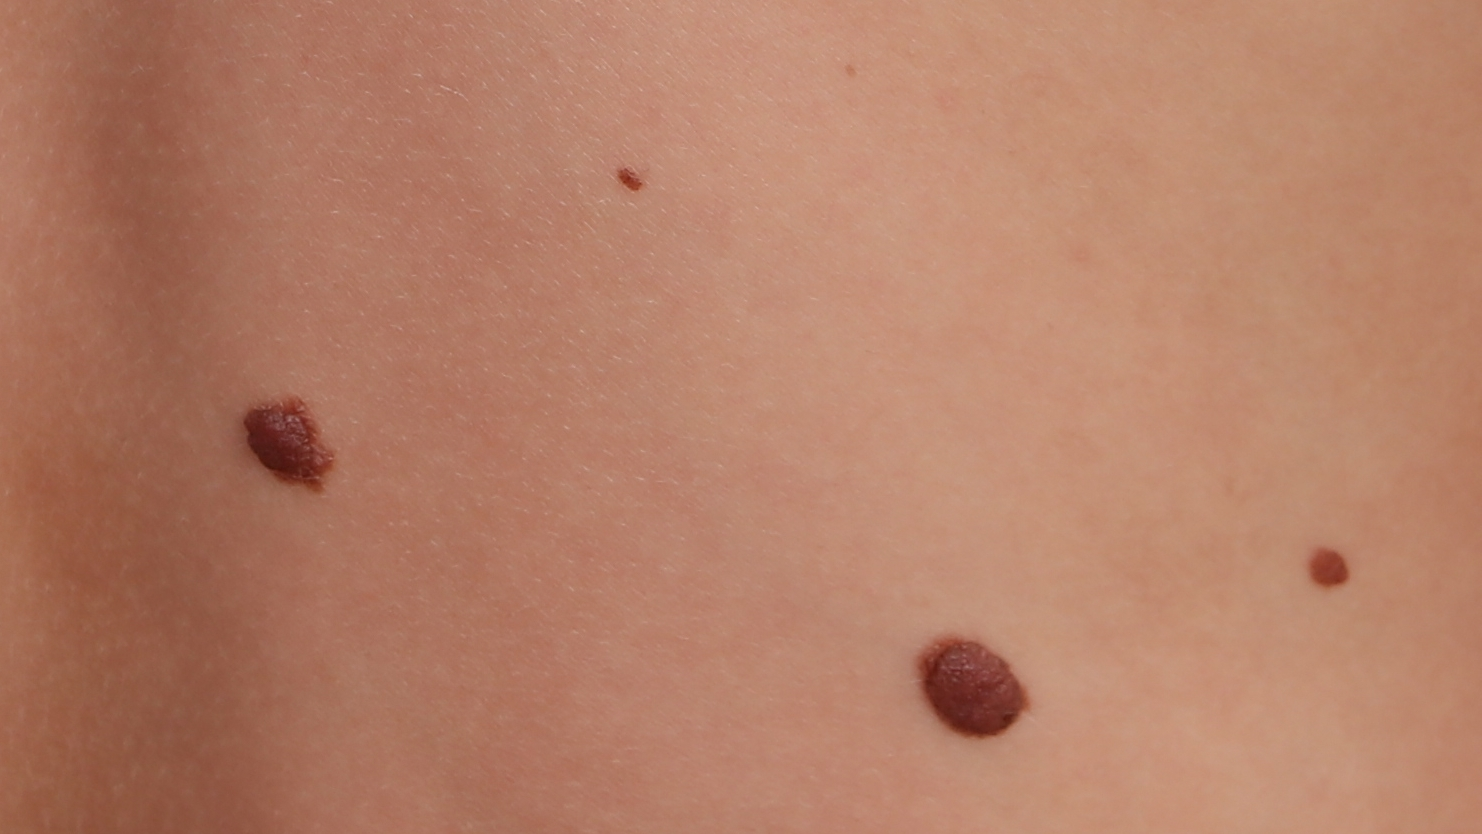 Why Not Prophylactic Removal of New Moles in Older People?